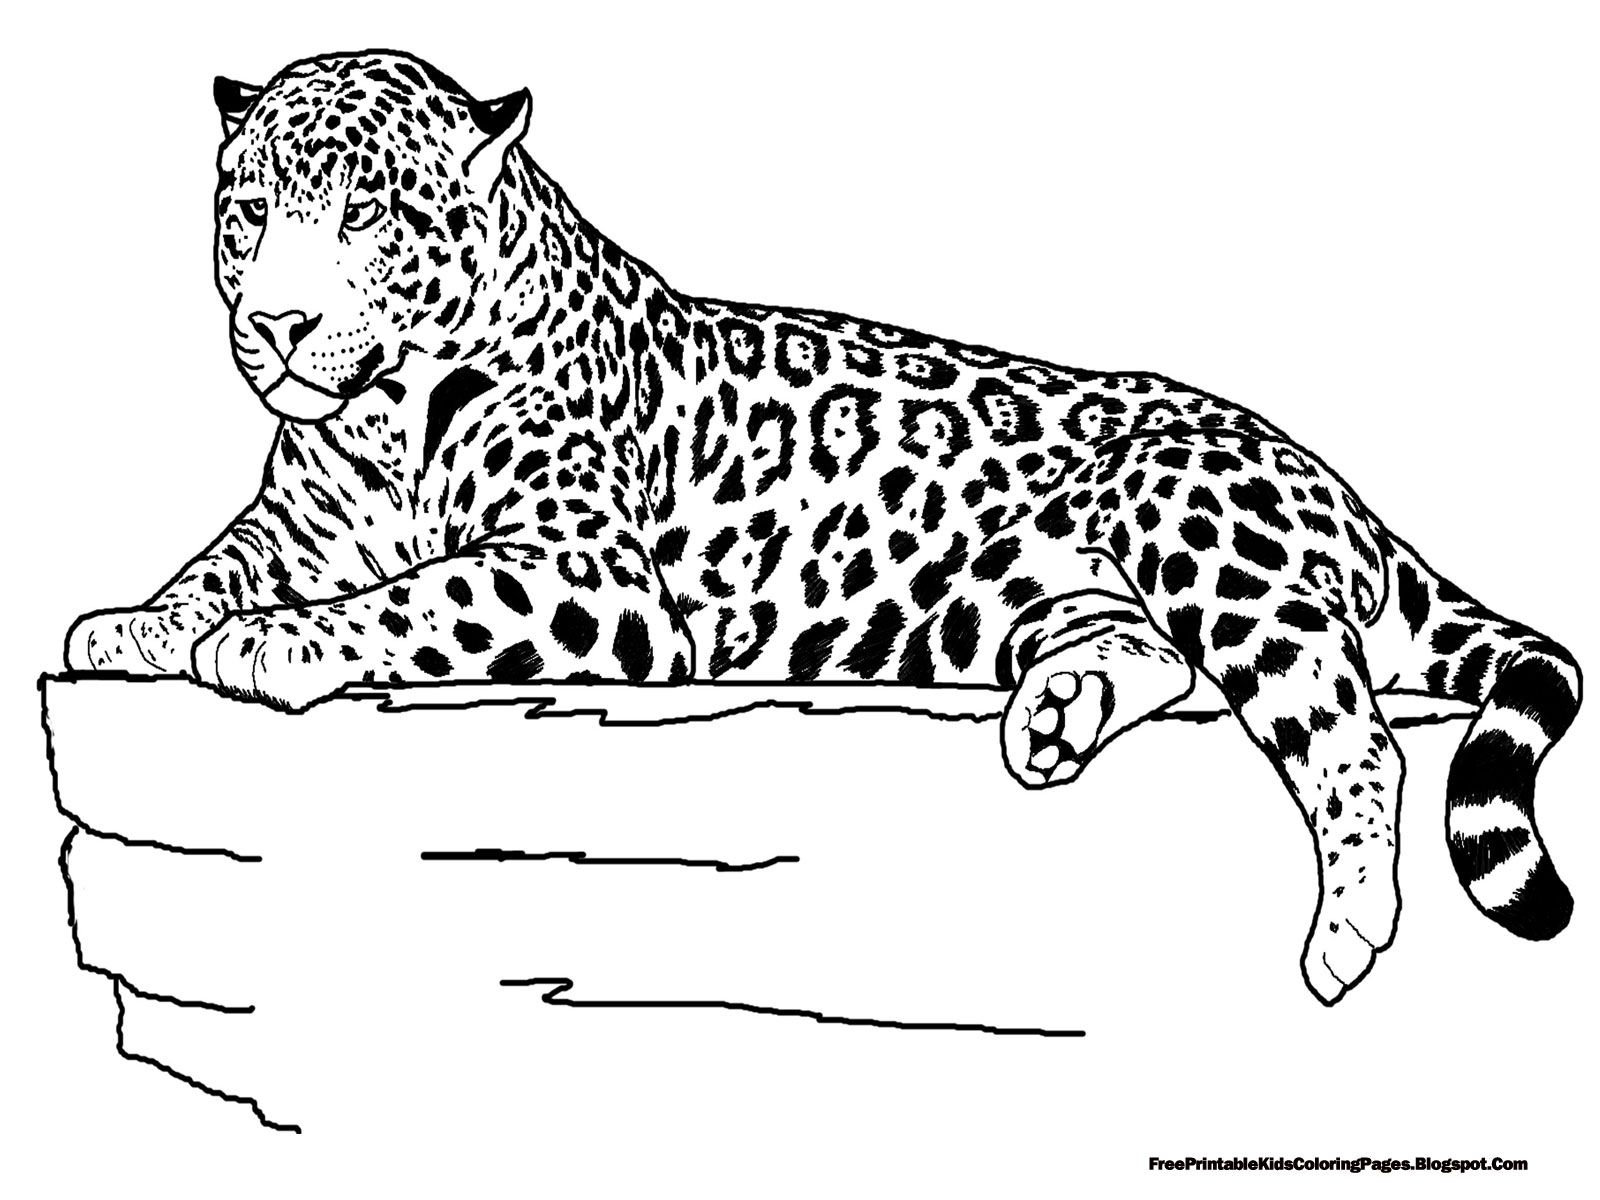 Realistic Animals Coloring Pages Printable Sheets For Kids Get The Latest Free Images Favorite